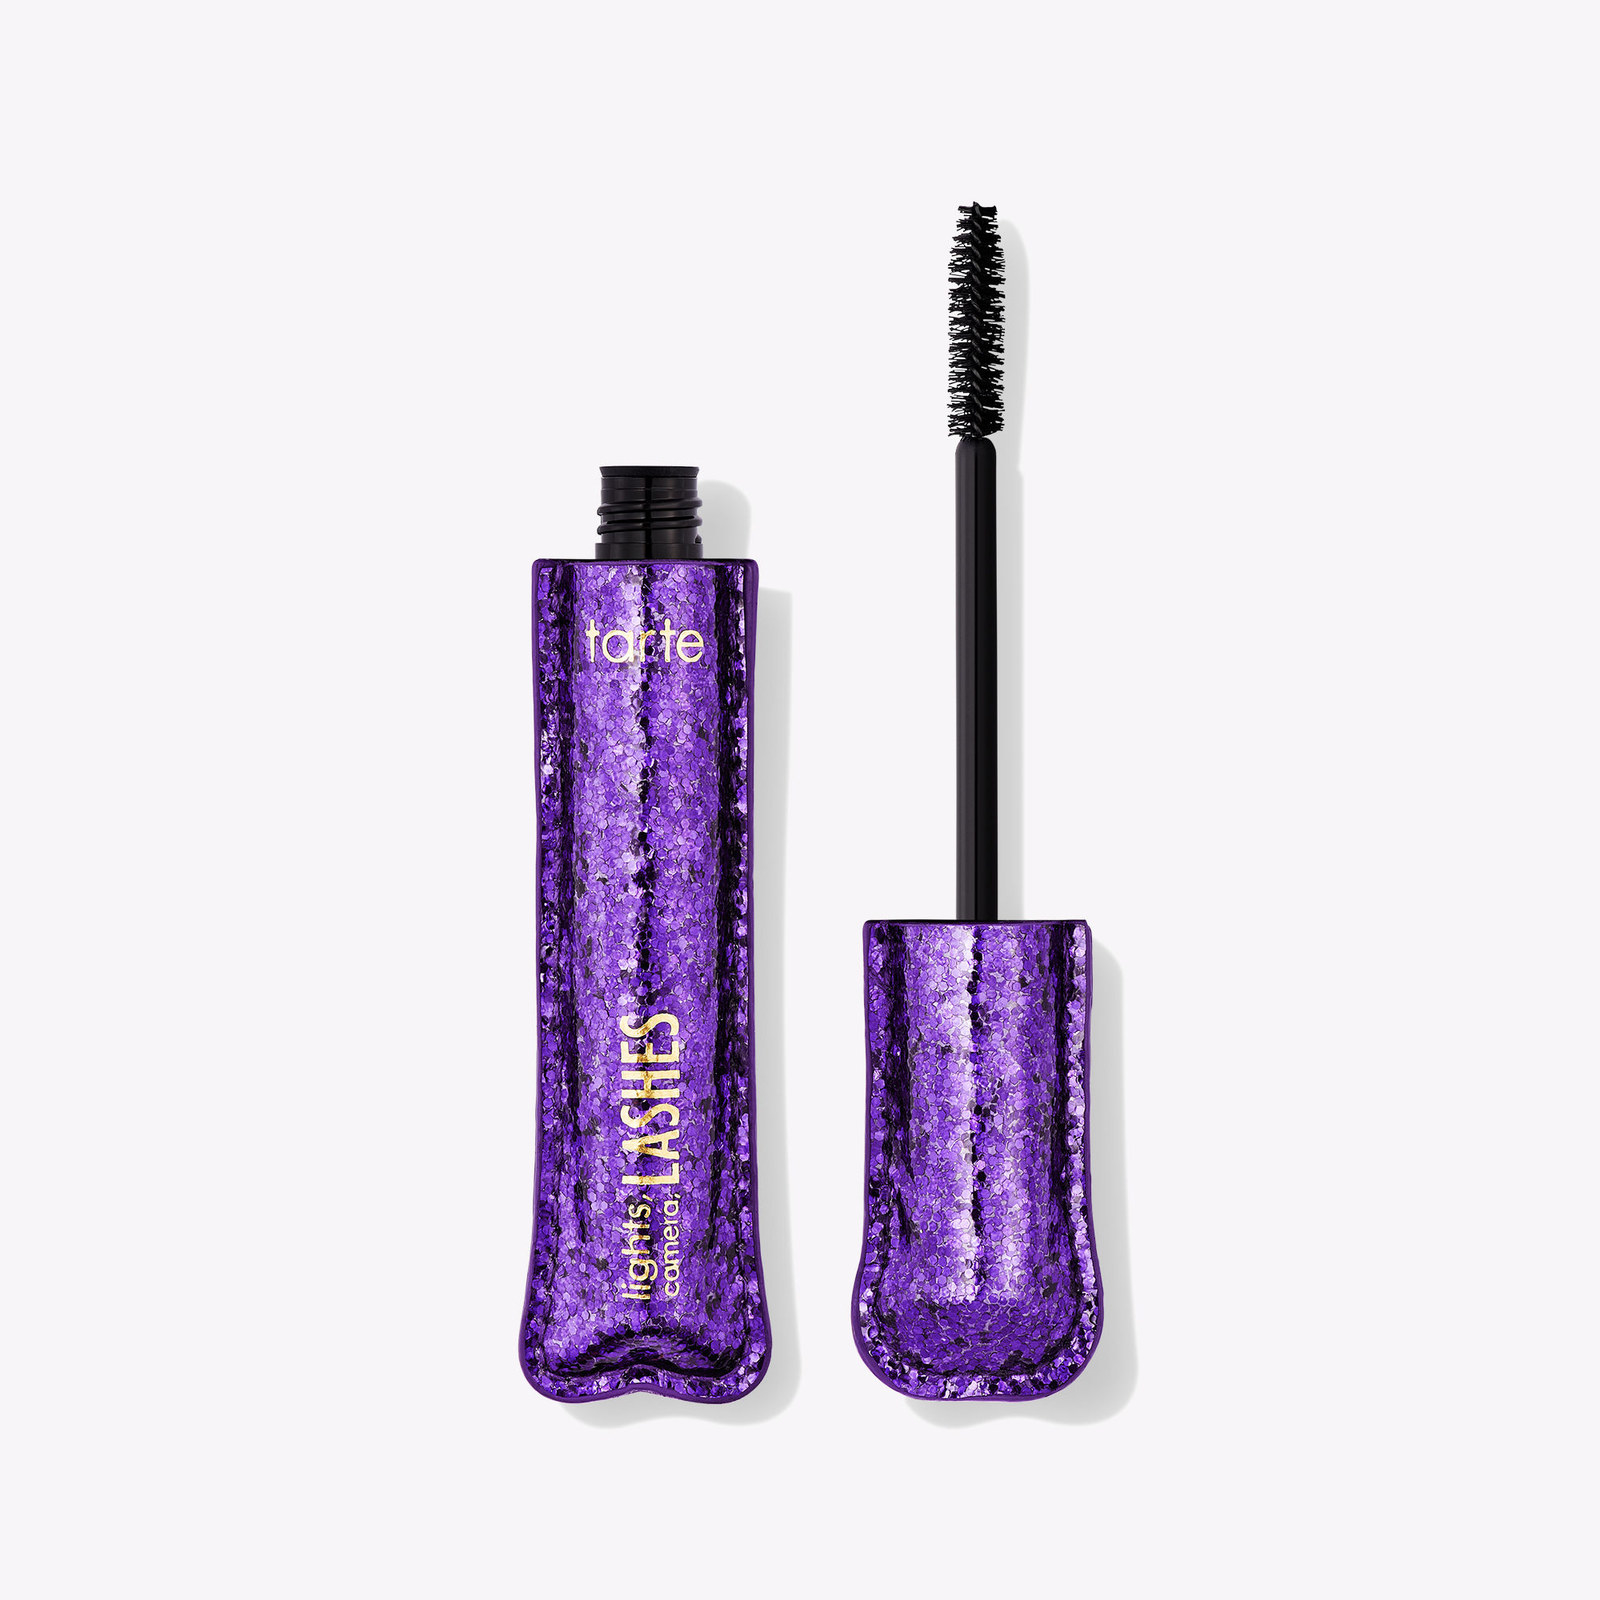 d9590c8b135 I went for the Lights, Camera, Lashes 4-in-1 mascara — I mean, this just  seems to have it all. A vegan formula, cult following, and beneficial  ingredients ...